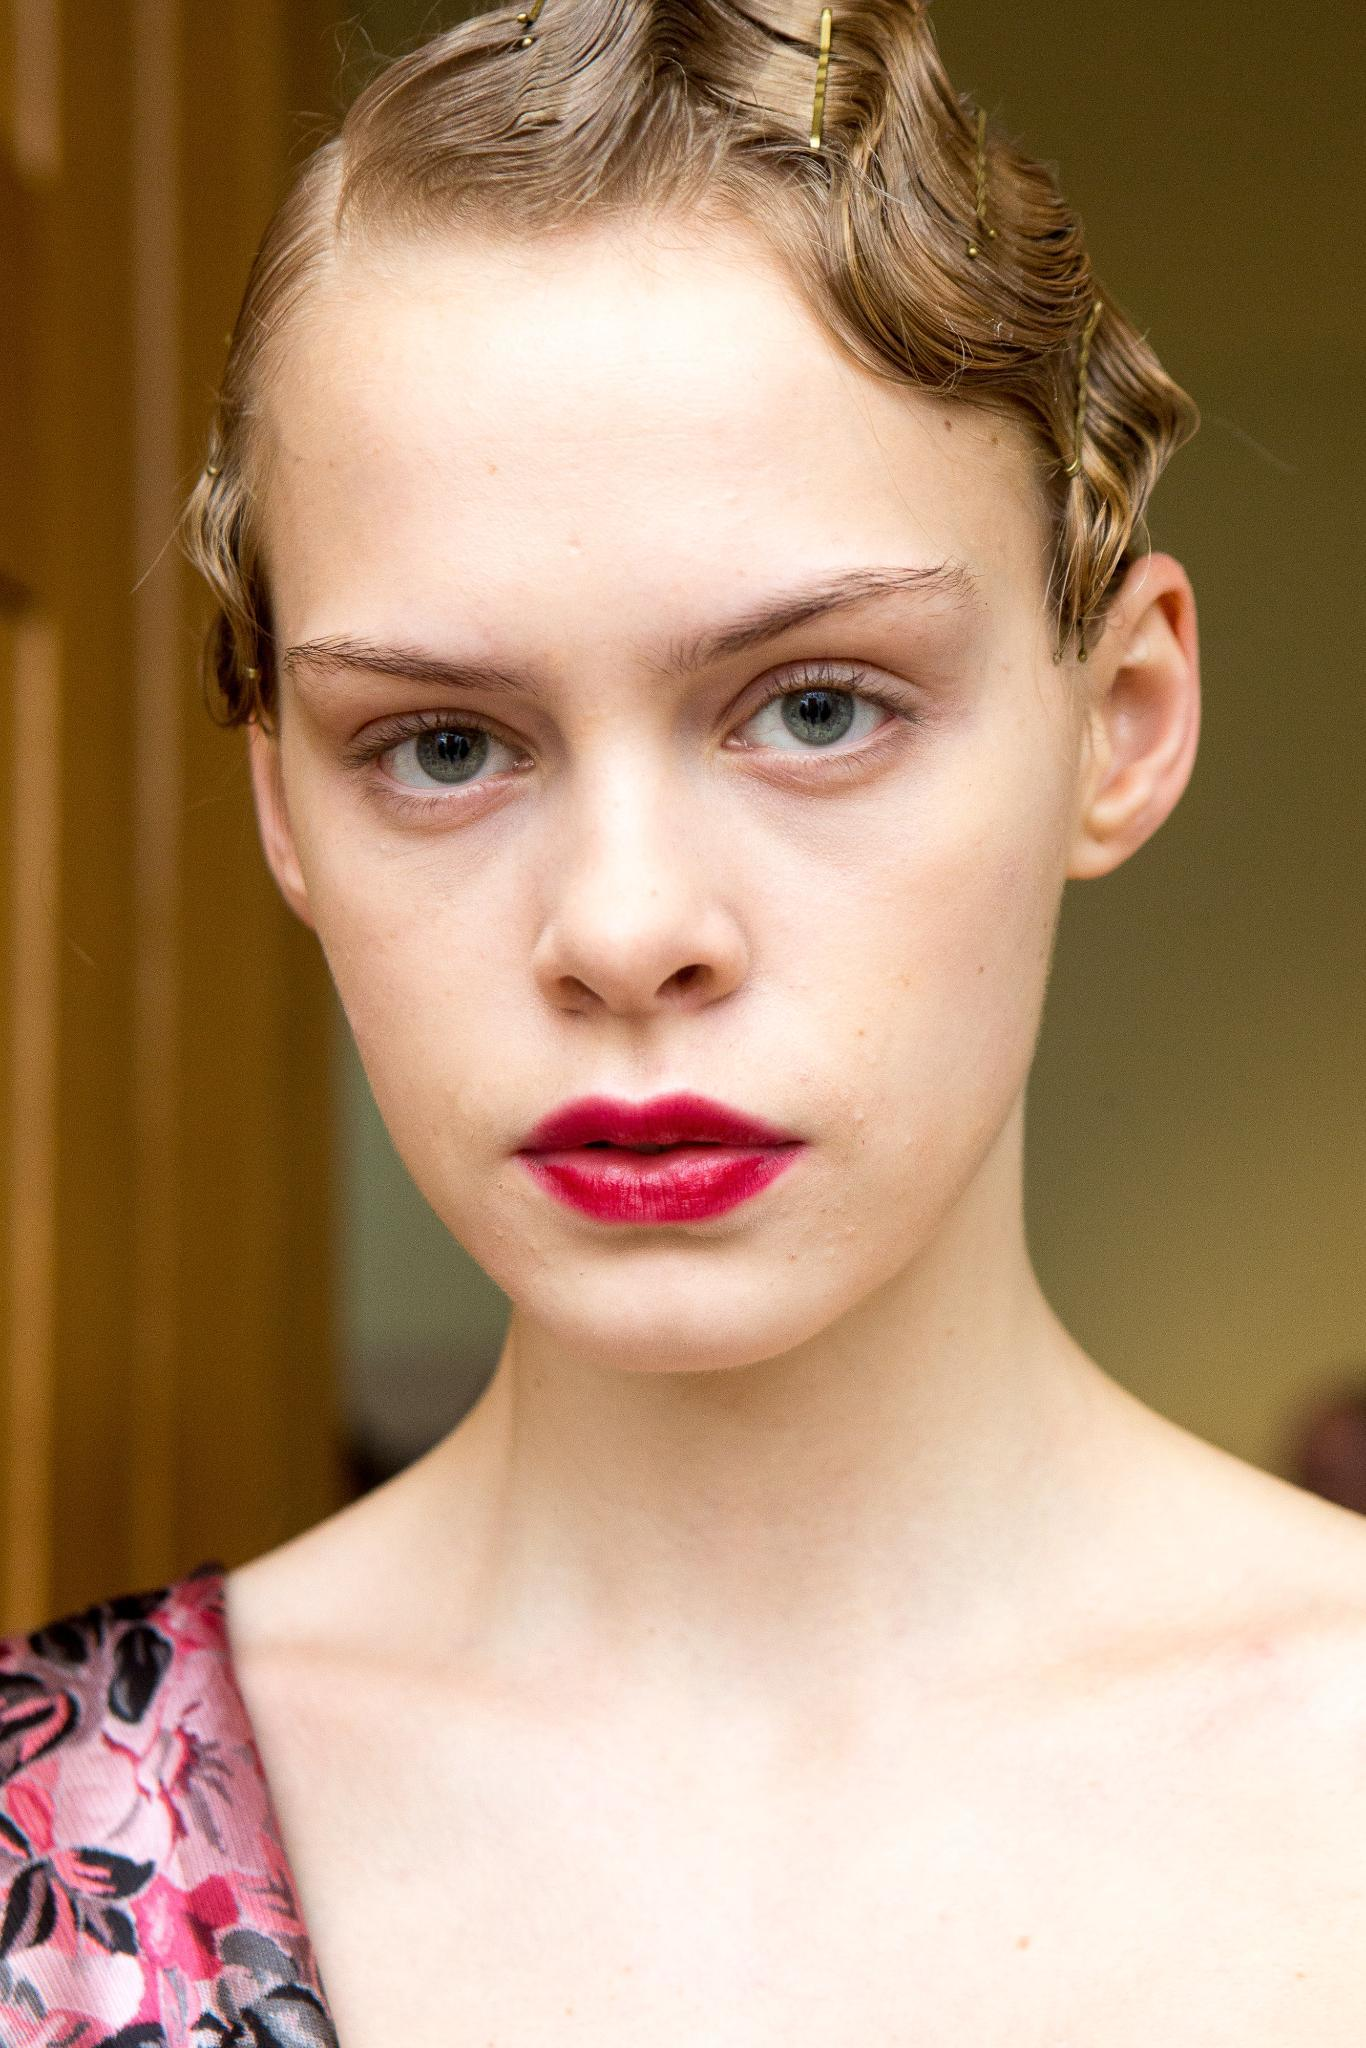 Wedding guest hairstyles: Shot of a model with her light blonde hair styled into a finger wave, wearing a cherry lip and posing backstage at a show